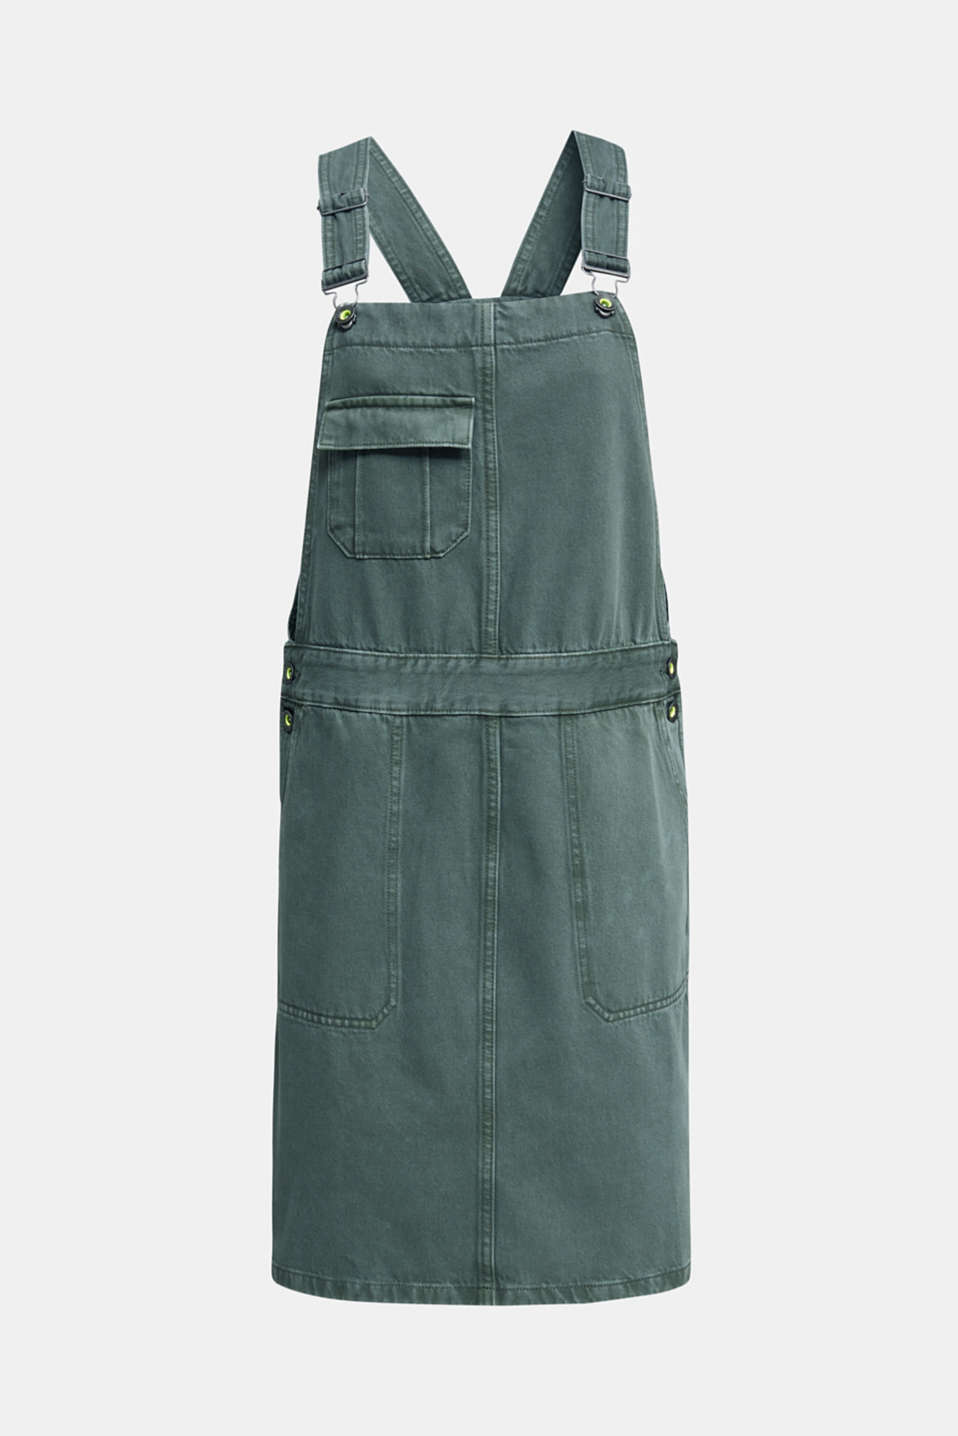 Dungaree skirt with breast pocket, KHAKI GREEN, detail image number 5